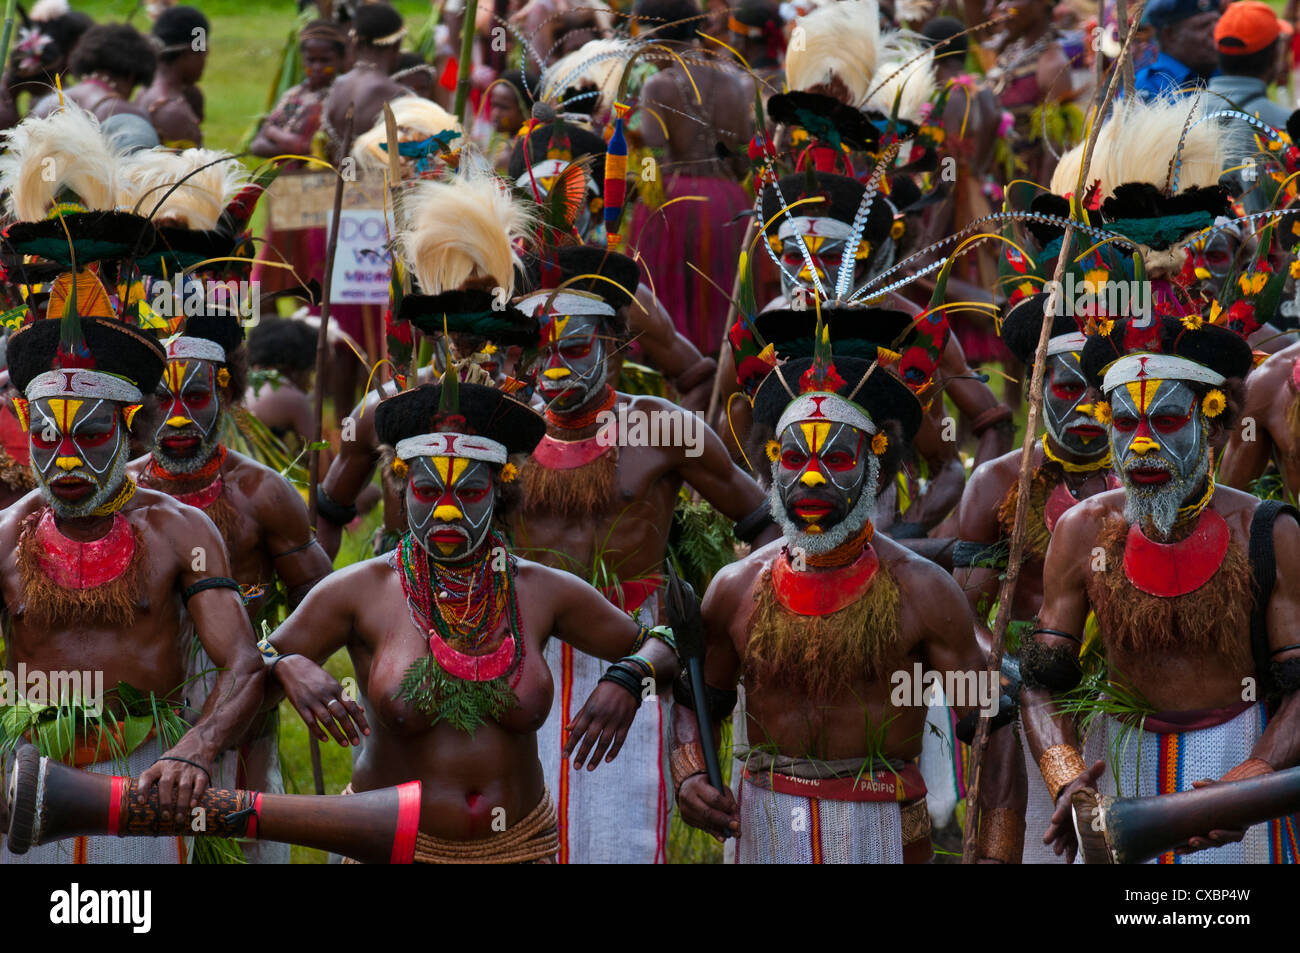 papua new guinea sing sing woman stockfotos papua new guinea sing sing woman bilder alamy. Black Bedroom Furniture Sets. Home Design Ideas